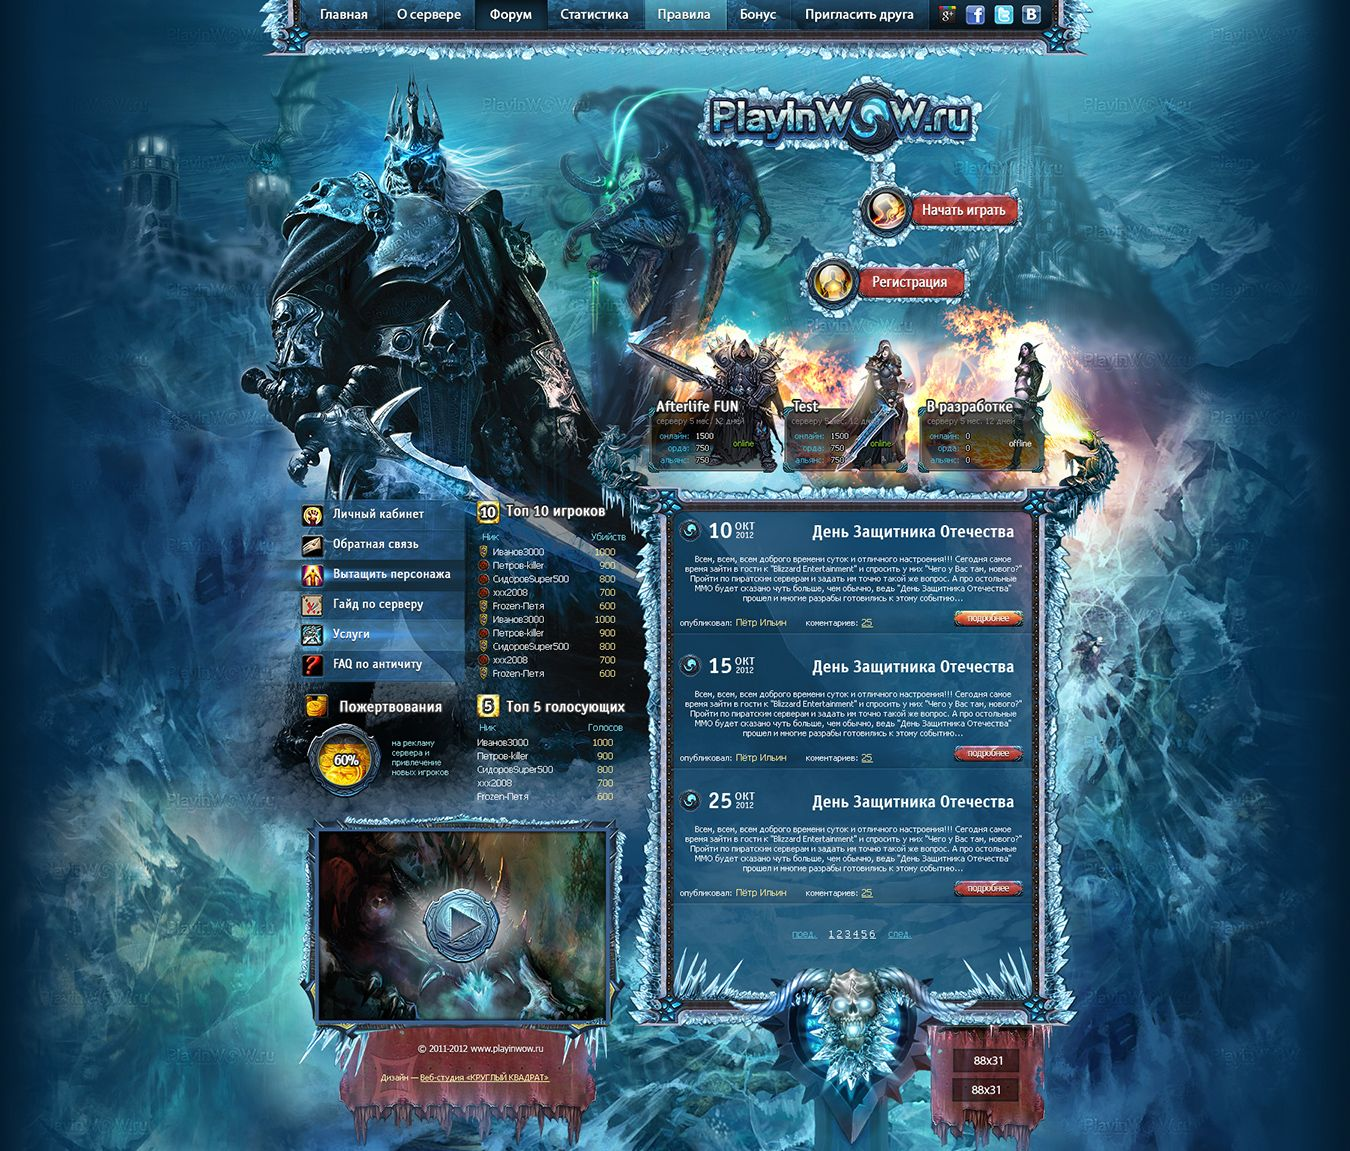 world of warcraft site 39 39 play in wow 39 39 by dattadesign